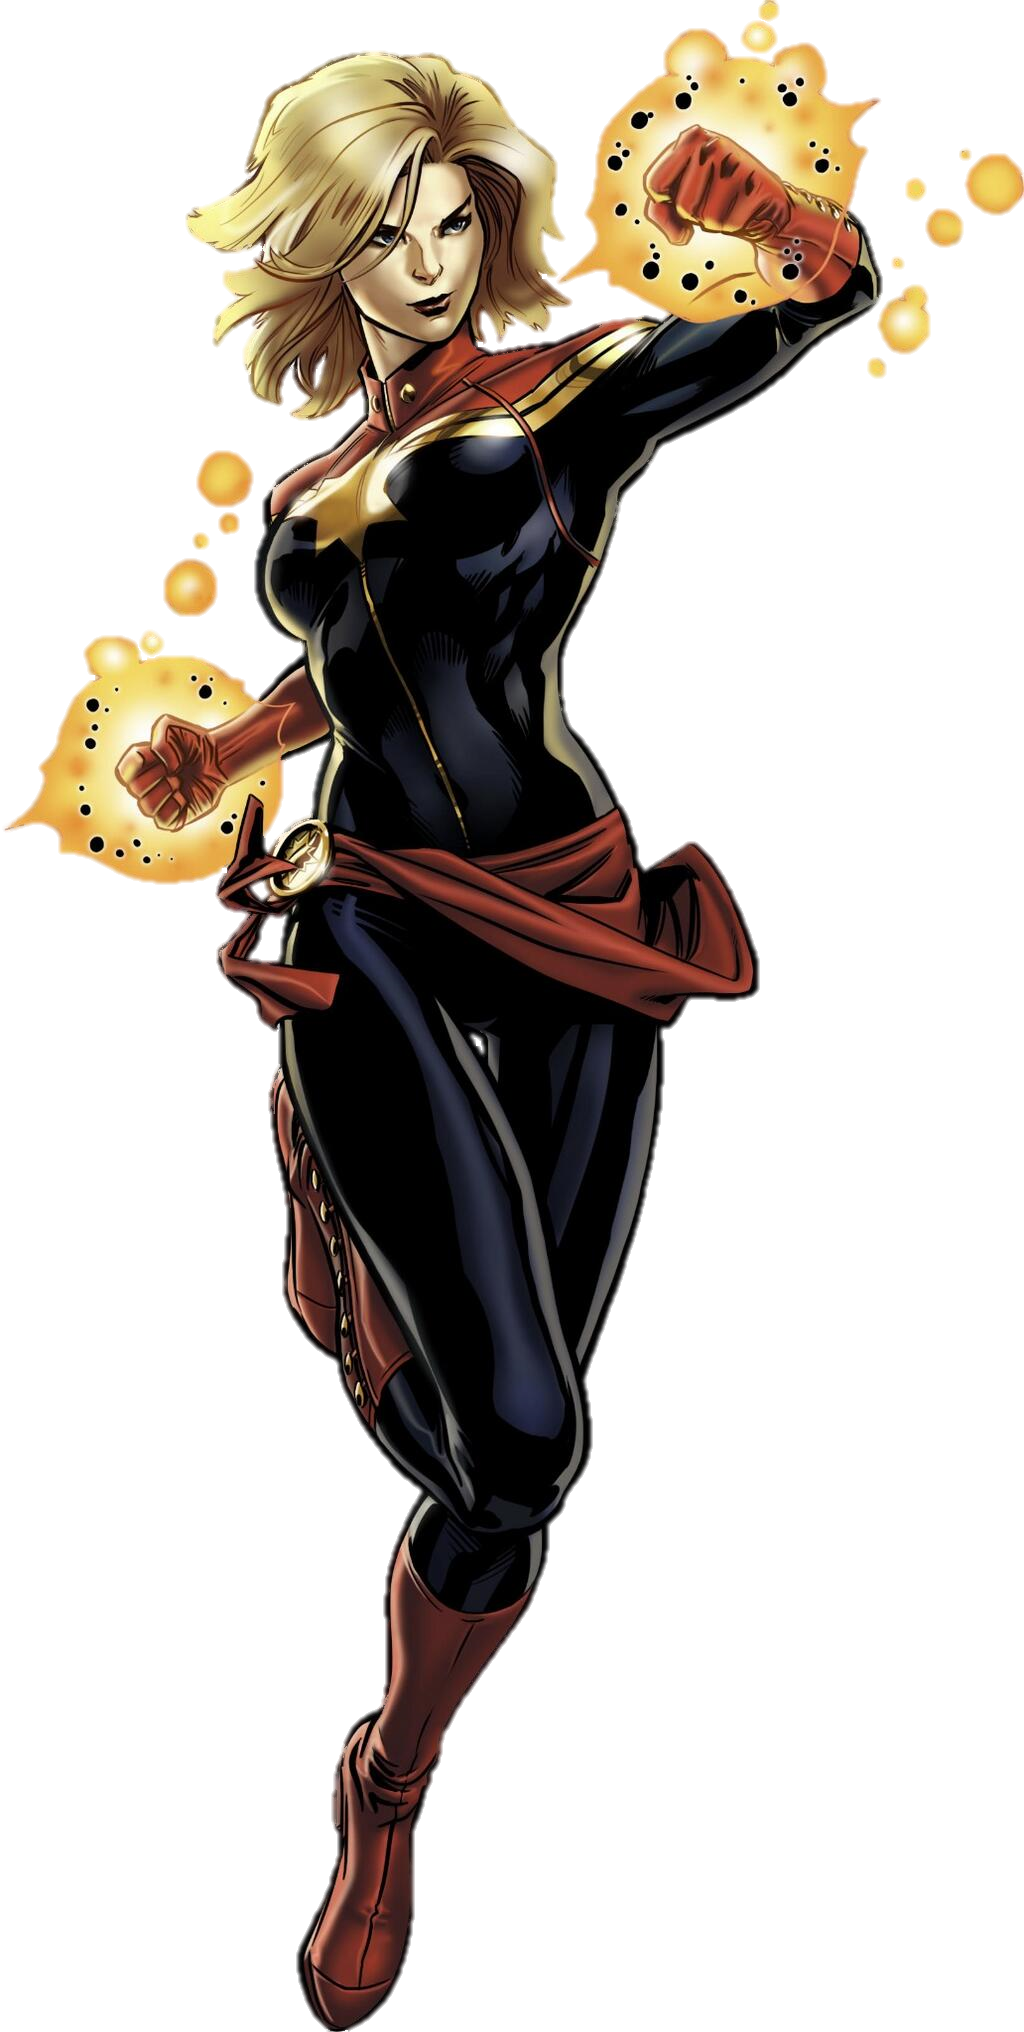 Download Captain Marvel Transparent Background Hq Png Image Freepngimg When earth is caught in the middle of an intergalactic conflict between two alien. captain marvel transparent background